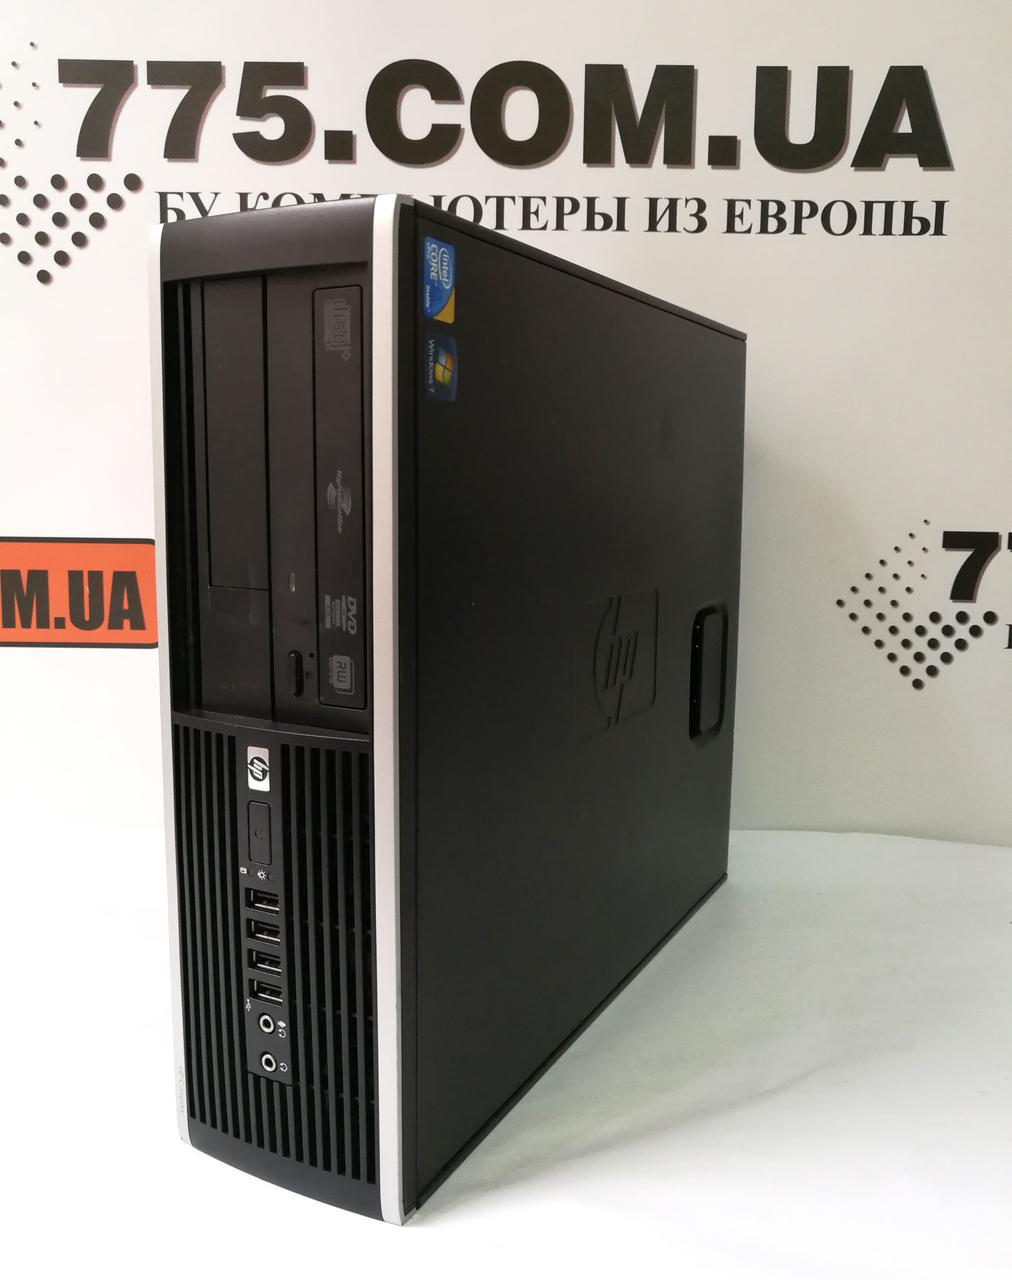 Компьютер HP 8100 (Desktop), Intel Core i3-540 3.06GHz, RAM 4ГБ, HDD 160ГБ